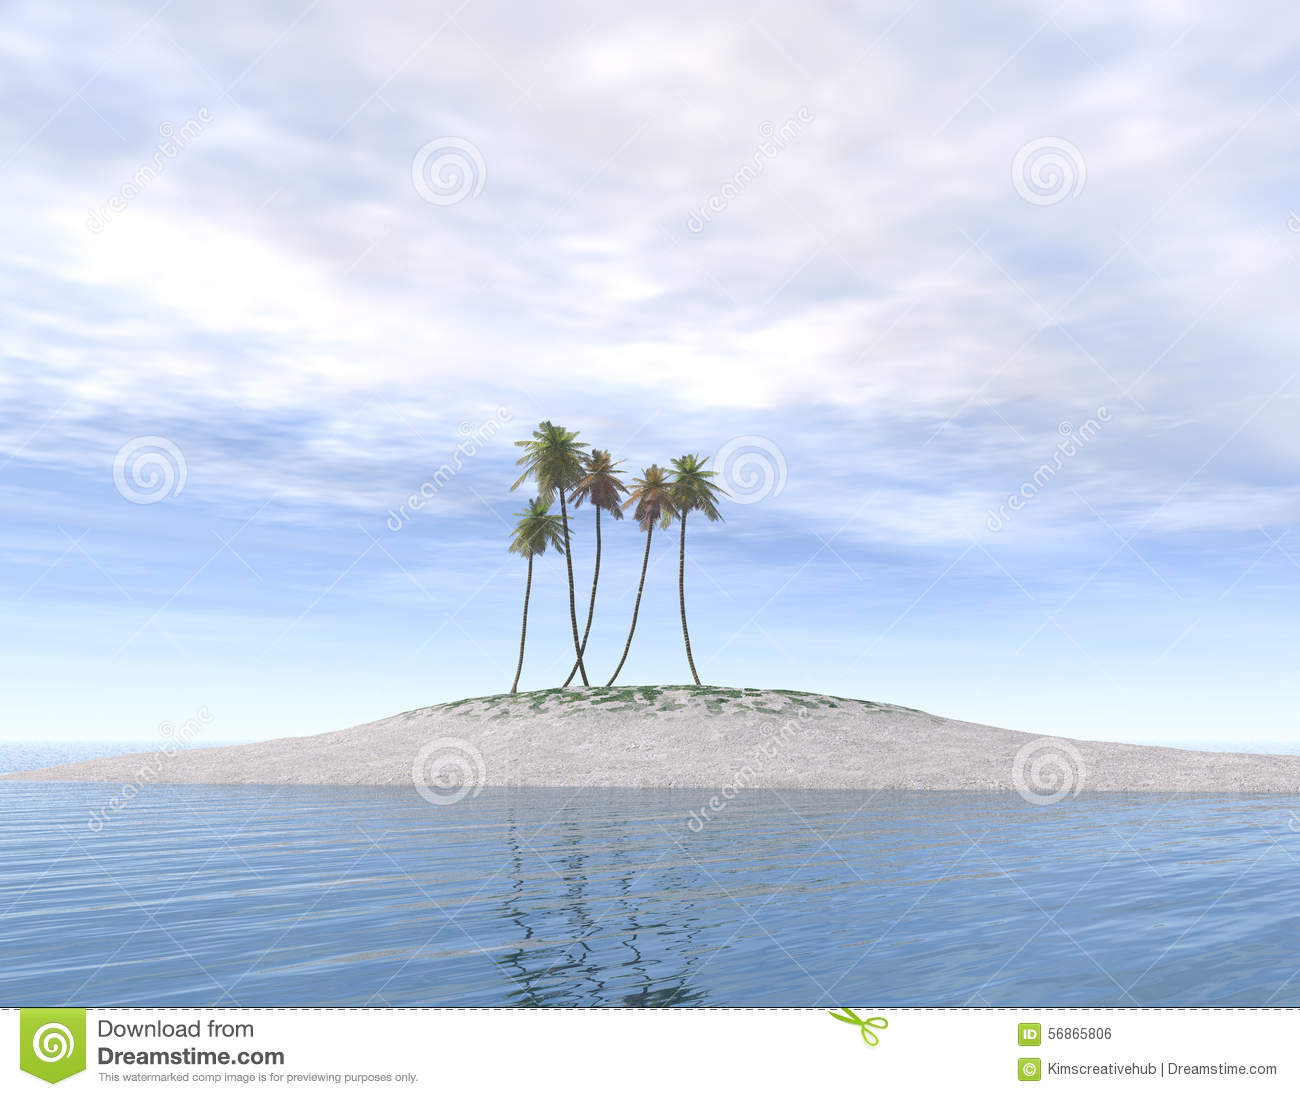 Deserted Island Beach: Deserted Island With Palm Trees Stock Illustration